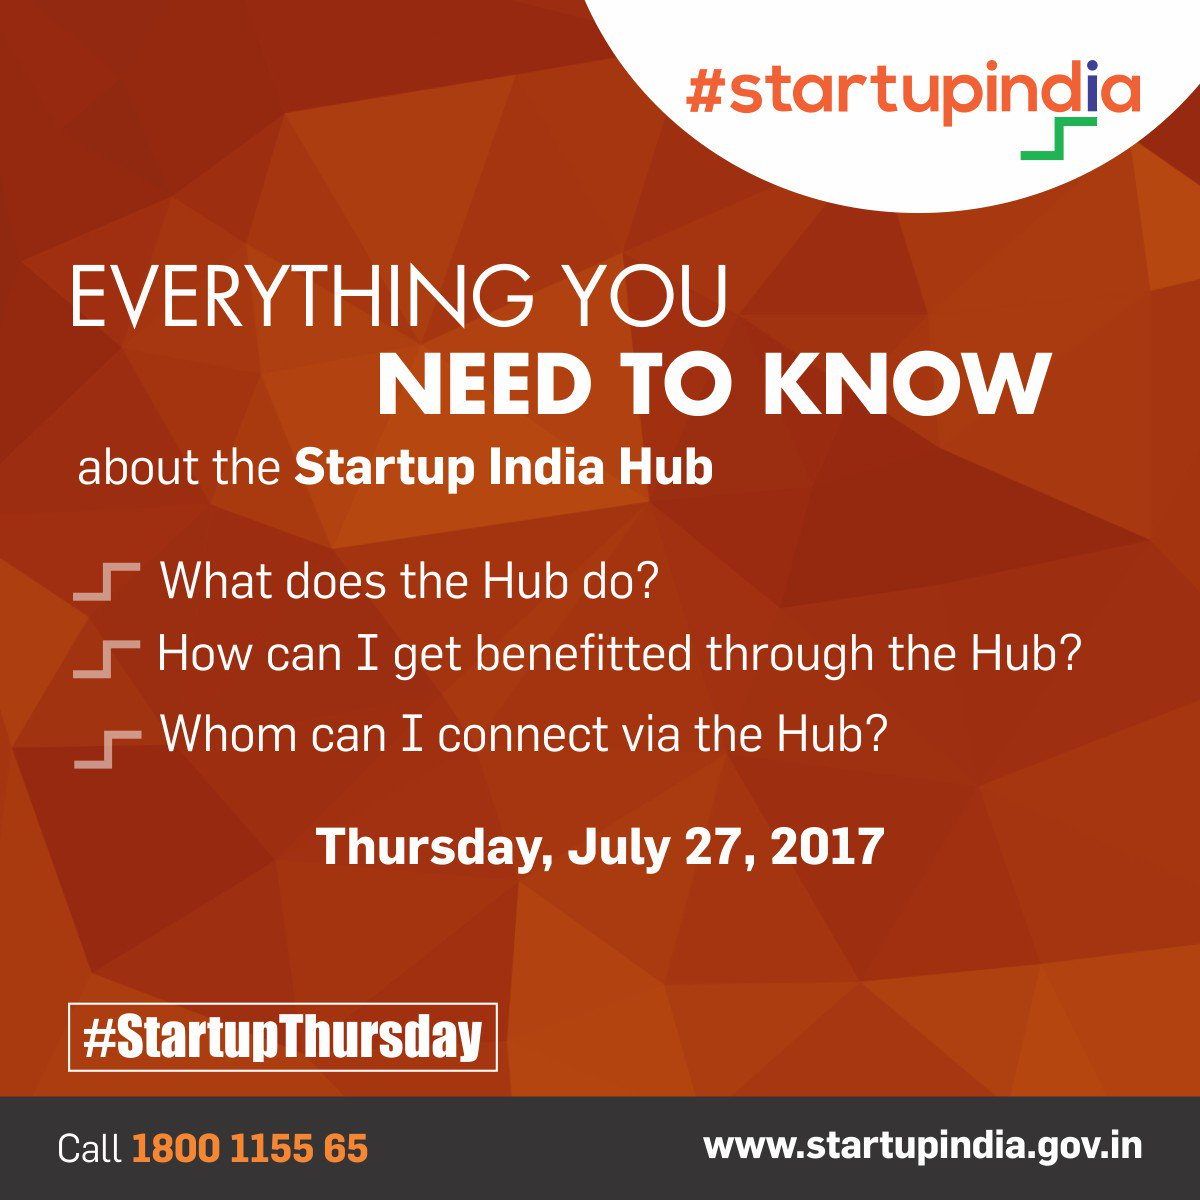 Get answers to all your queries about the hub. Watch out for the #StartupThursday session to know more. #StartupIndia <br>http://pic.twitter.com/yj1vbrwTwW